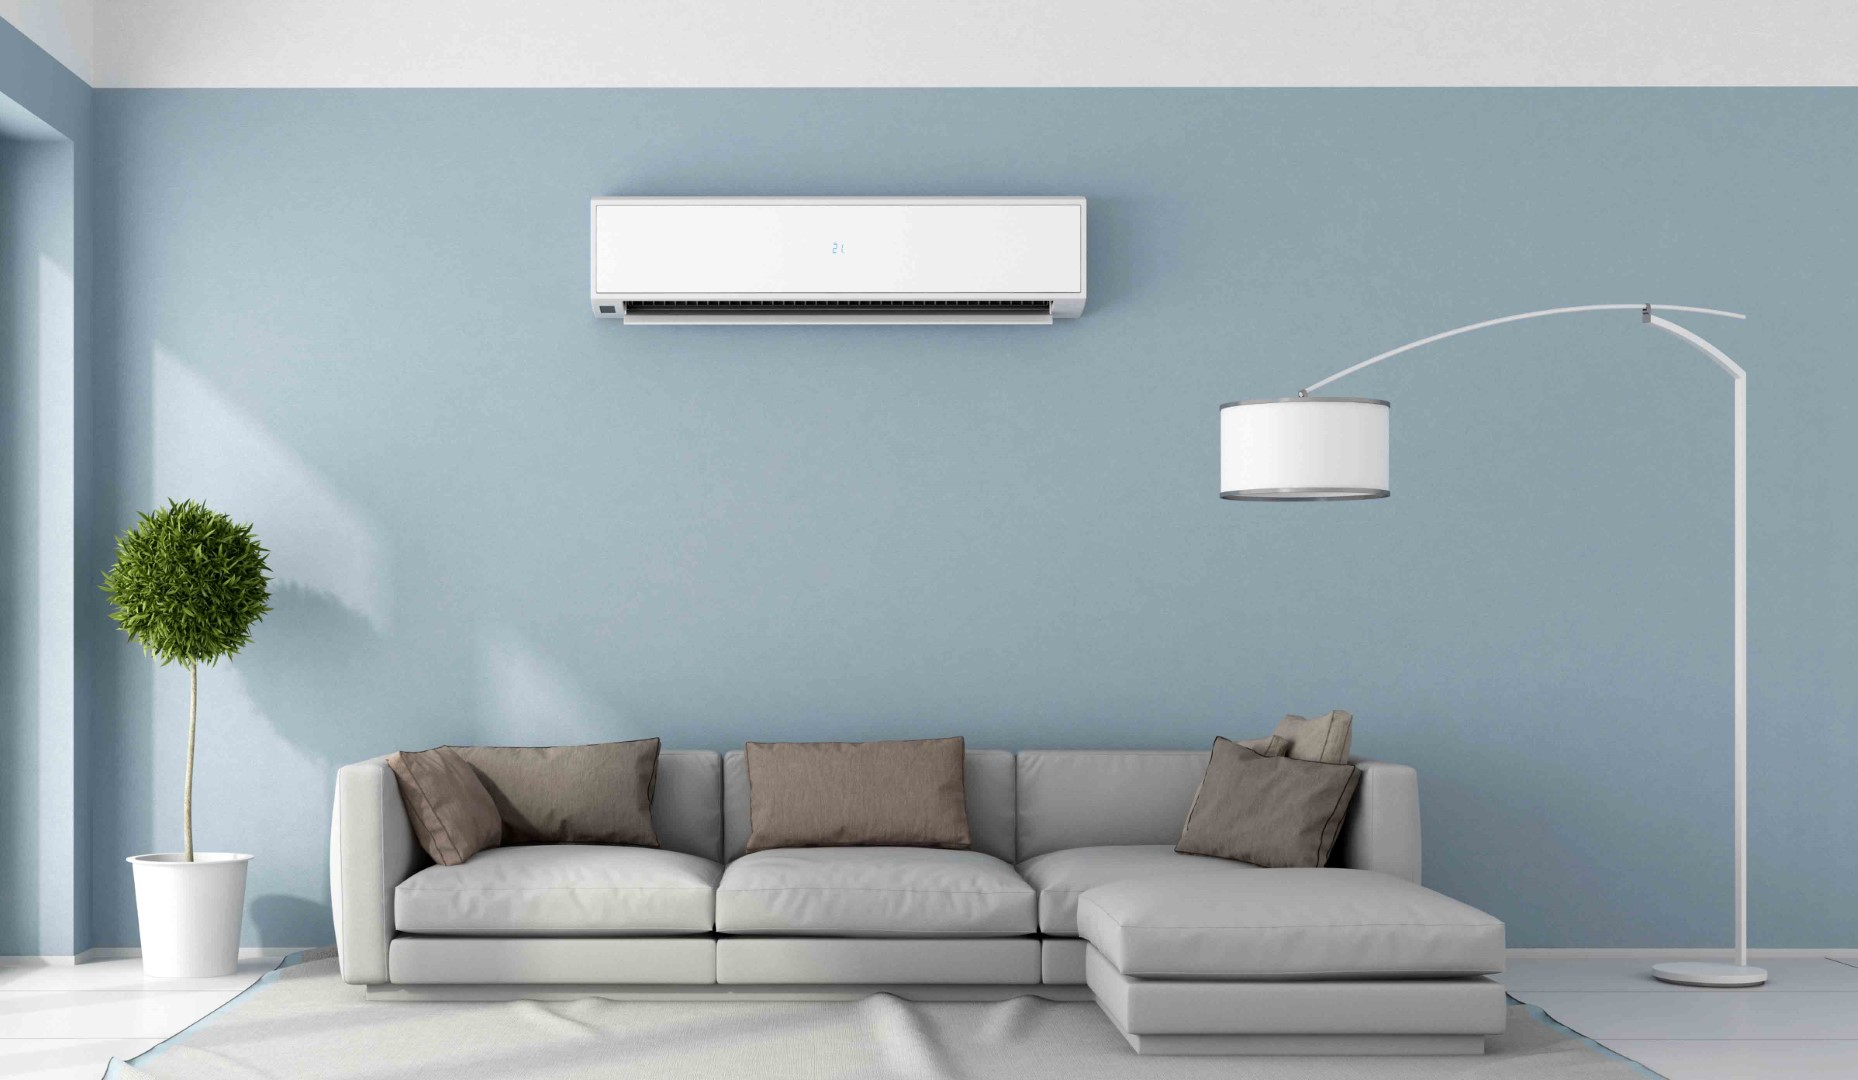 Photo of a living room with a ductless mini split installed, an easy solution for heating and cooling small spaces provided by Maximum Heating & Air in Aurora